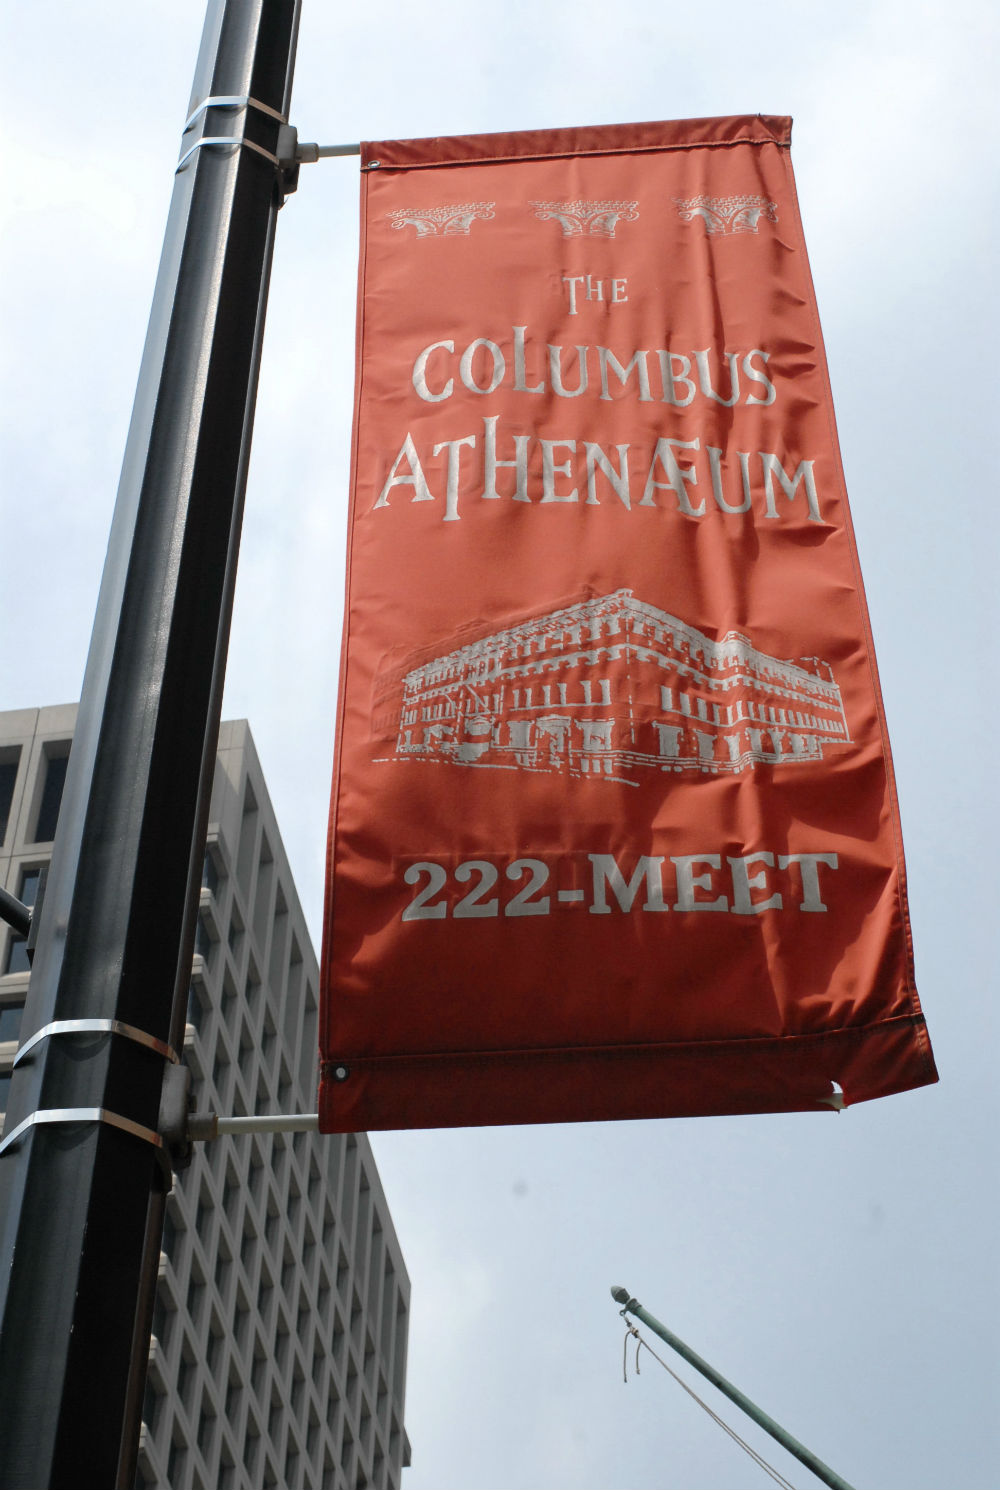 The Columbus Athenaeum wedding venue visited by officiant, Damian King